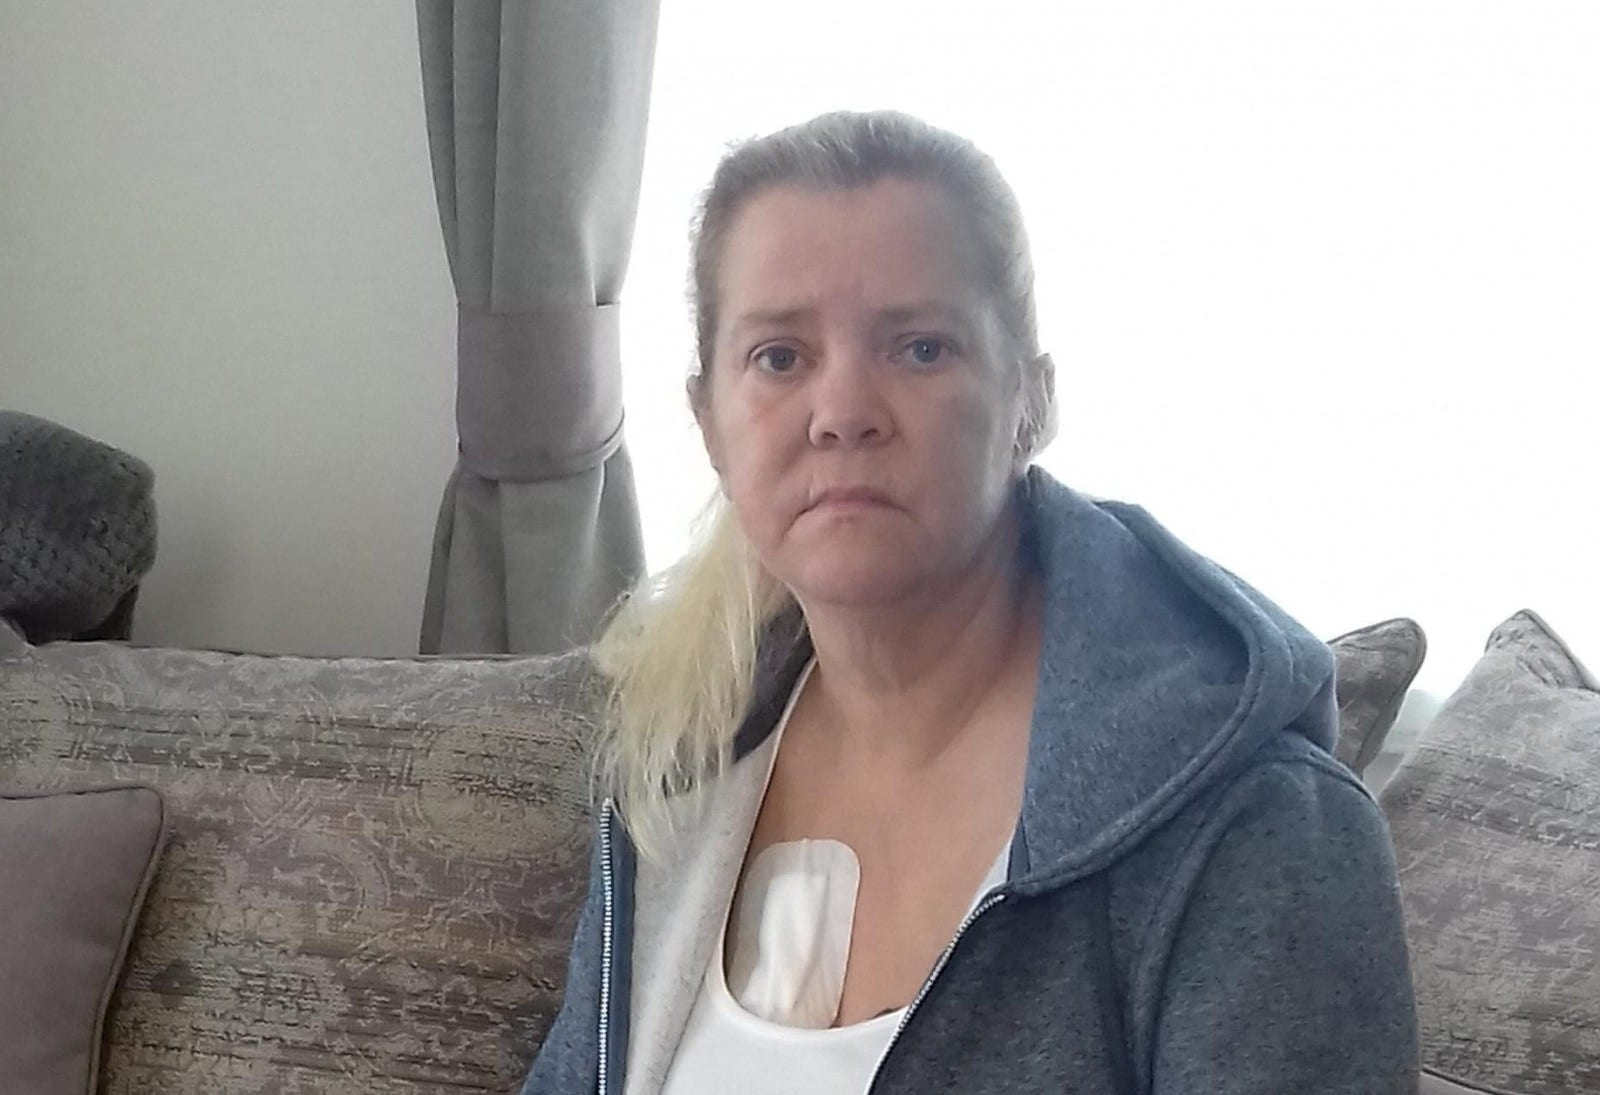 """The Problems I Have Faced Following The Surgery Have Completely Destroyed My Life"" – Woman Left In Constant Pain Receives Huge Payout After Blundering Surgeons Tear Blood Vessel"